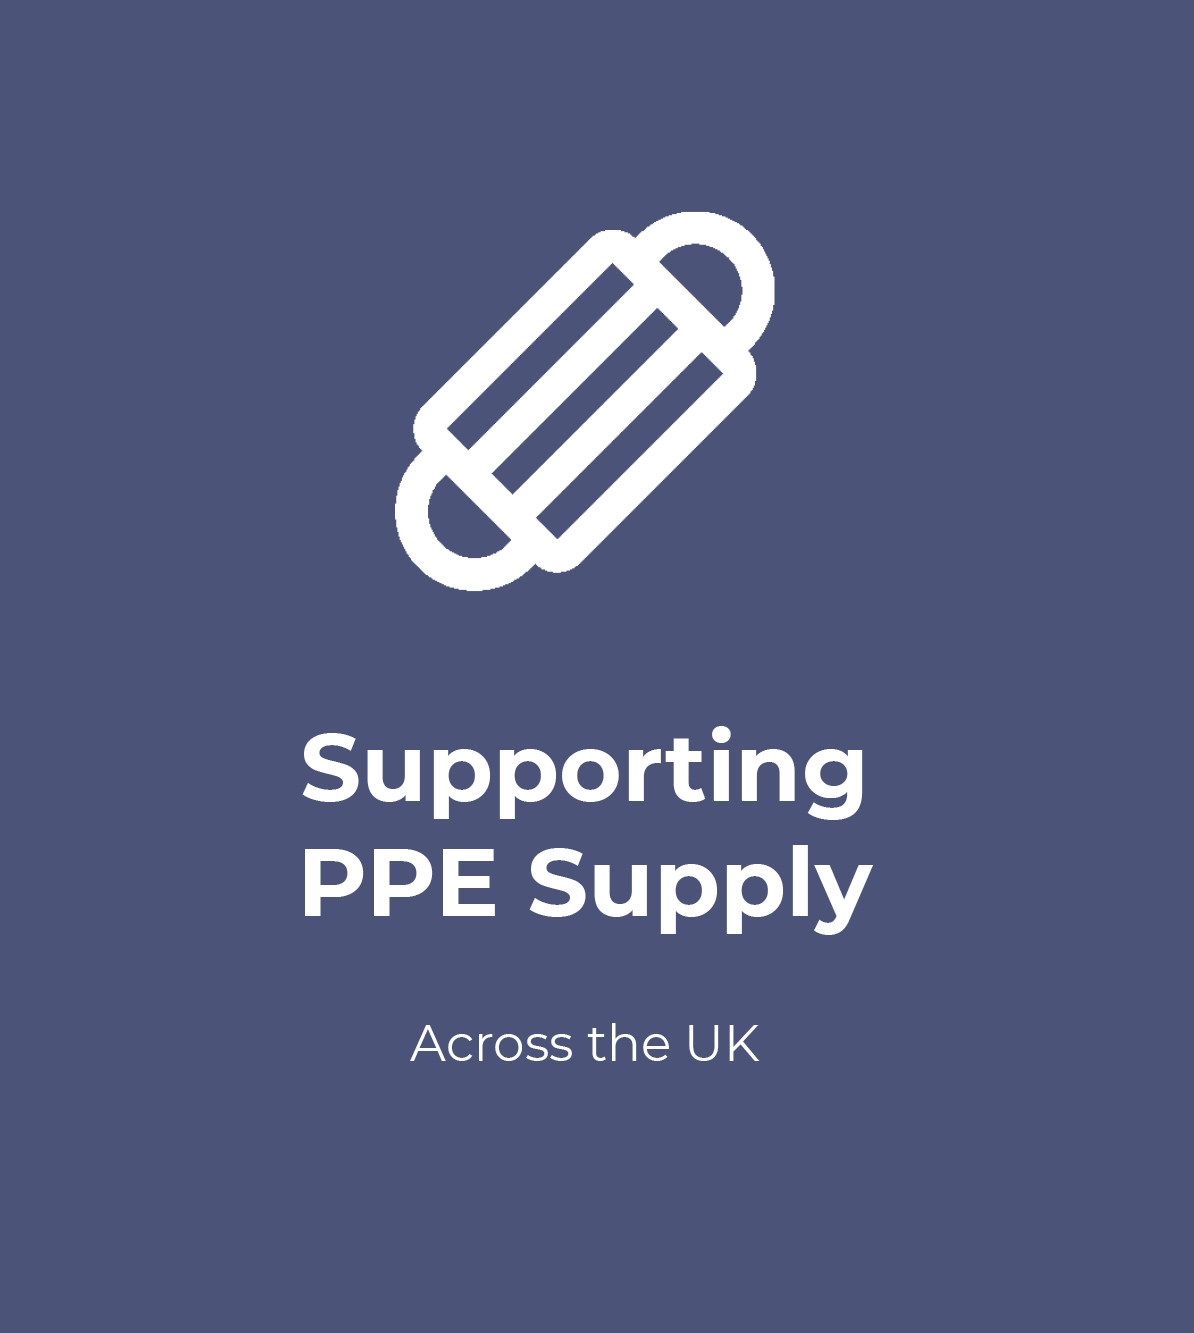 Supporting PPE Supply